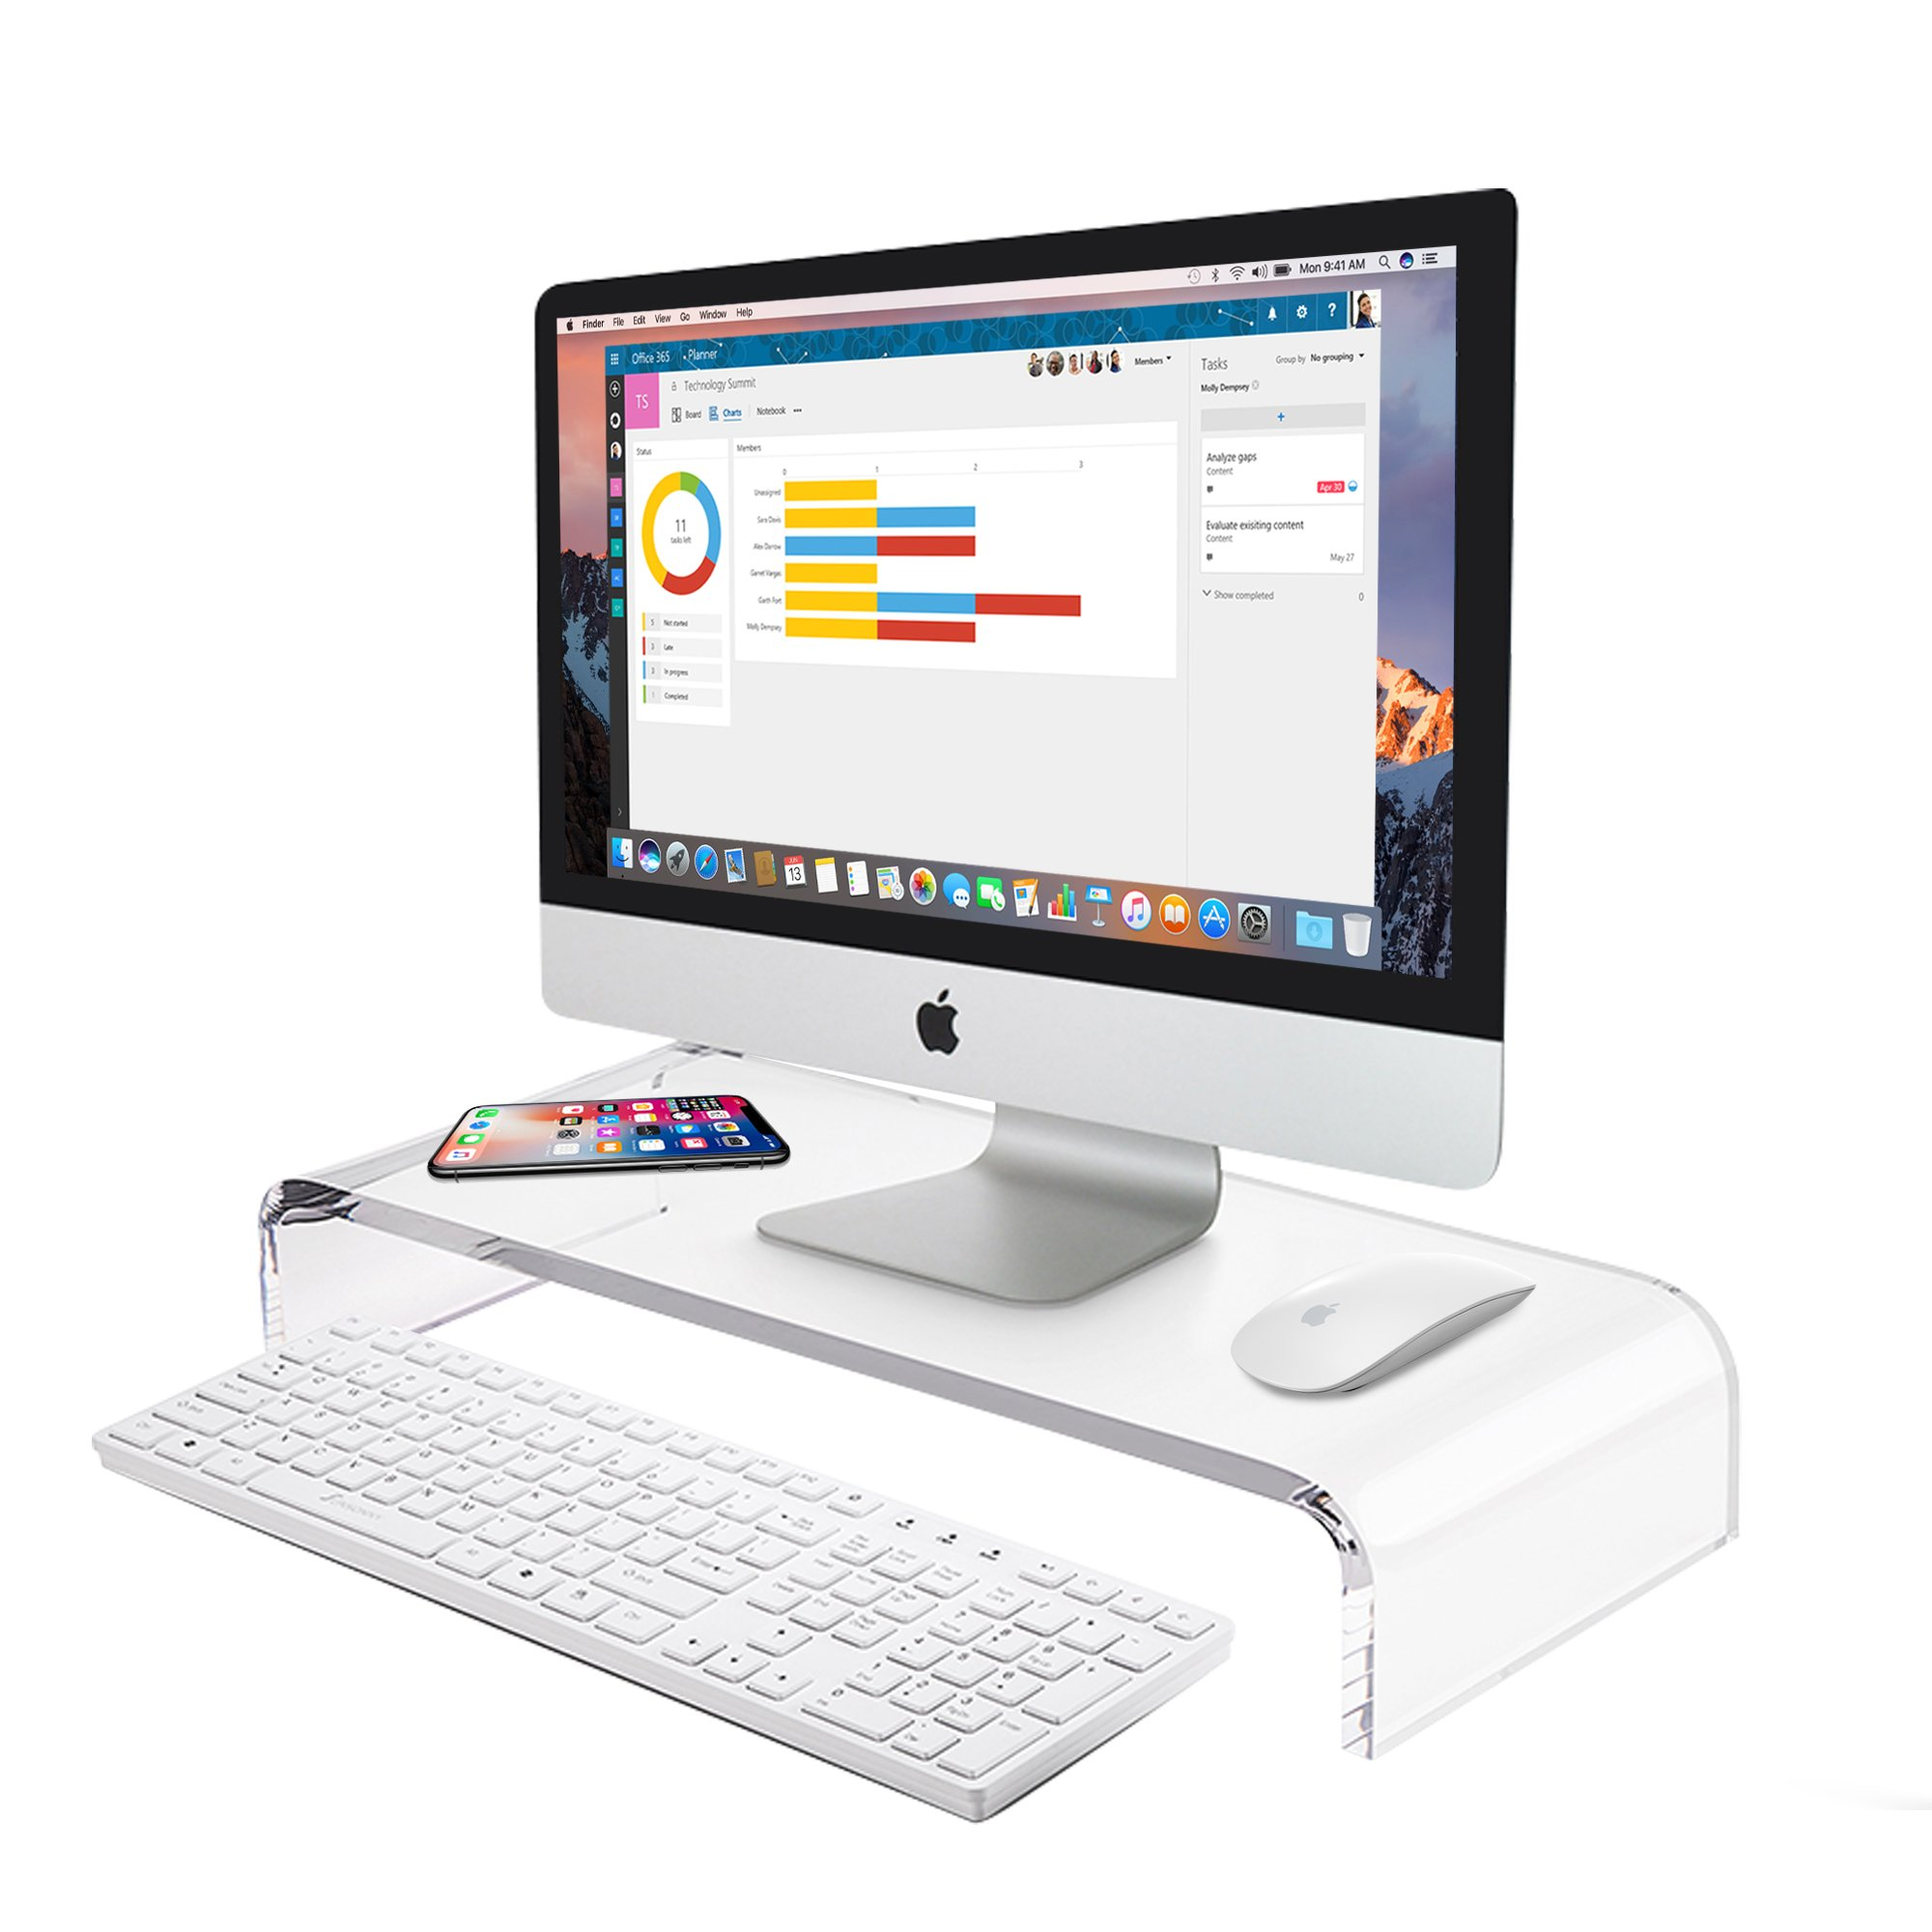 AboveTEK Premium Acrylic Monitor Stand, Custom Size Monitor Riser/Computer Stand for Home Office Business w/Sturdy Platform, PC Desk Stand for Keyboard Storage & Multi-Media Laptop Printer TV Screen by AboveTEK